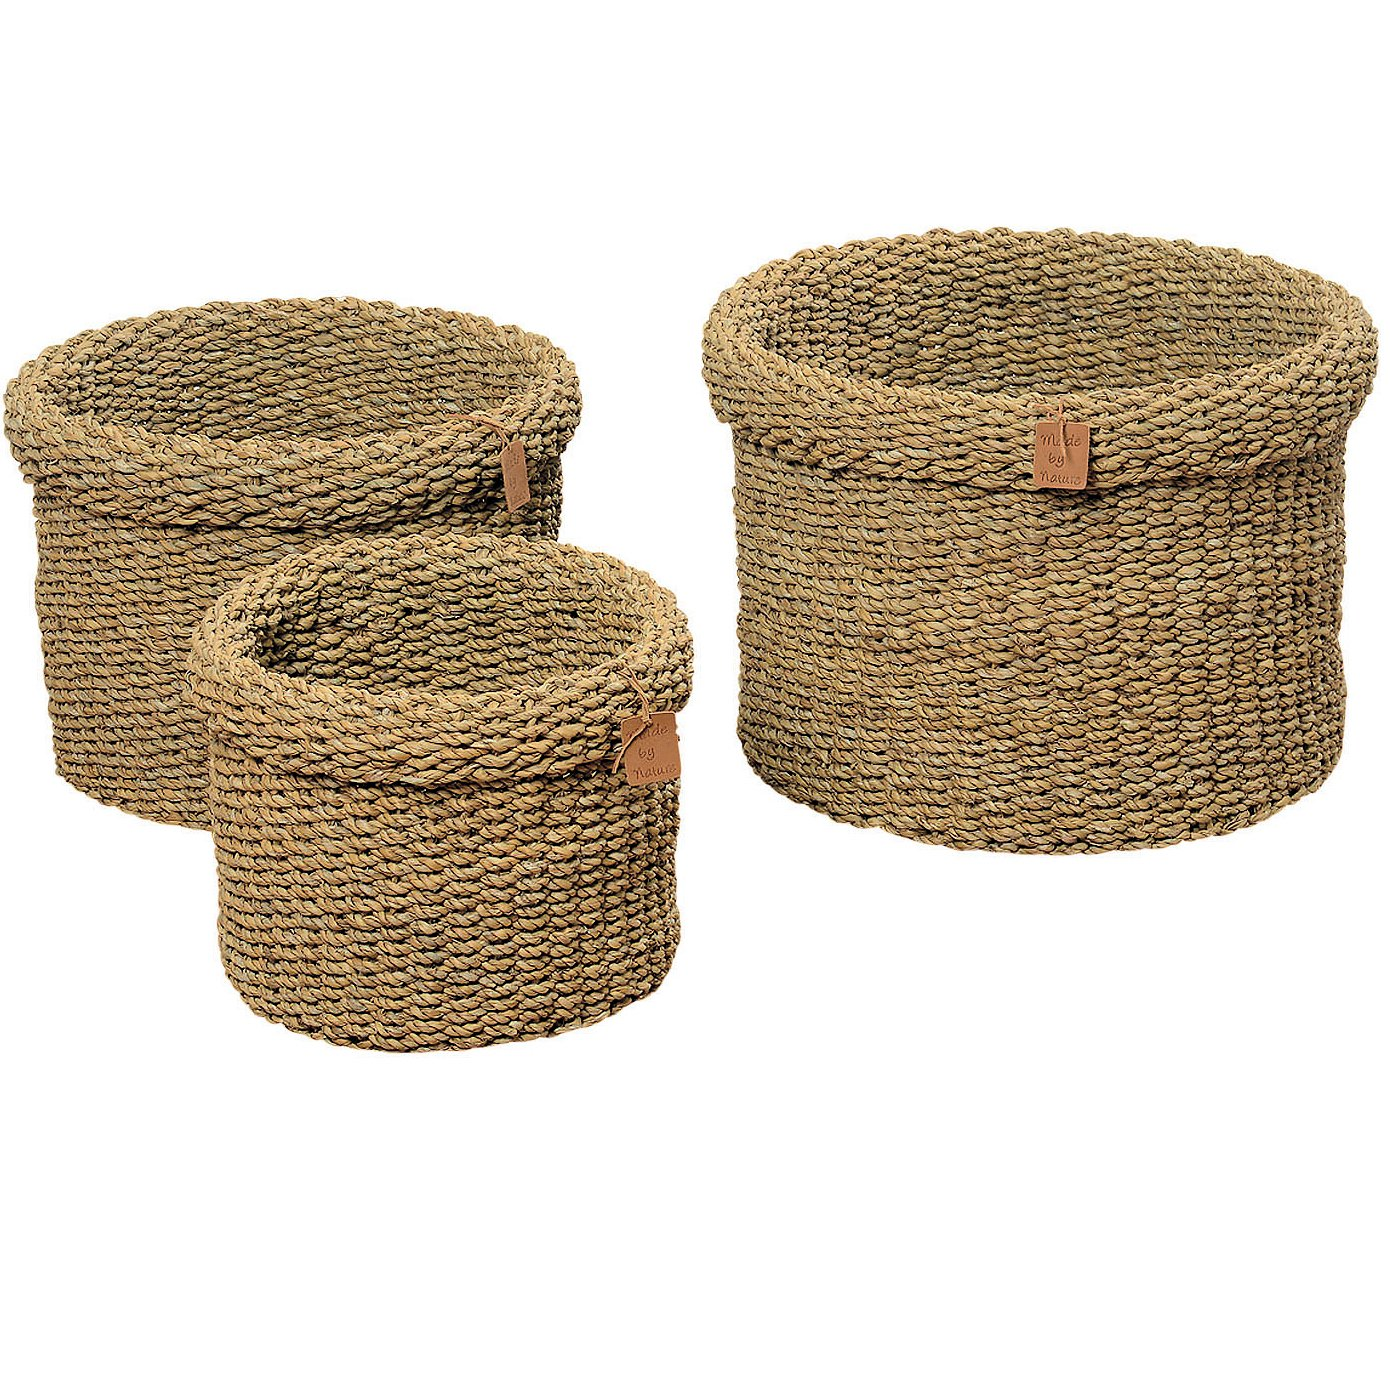 The Made by Nature Roll-top Round Chunky Weave Seagrass Baskets, Set of 3, Various Sizes approx. 17, 13 3/4, And 11 Inch in Diameter, By Whole House Worlds by Whole House Worlds